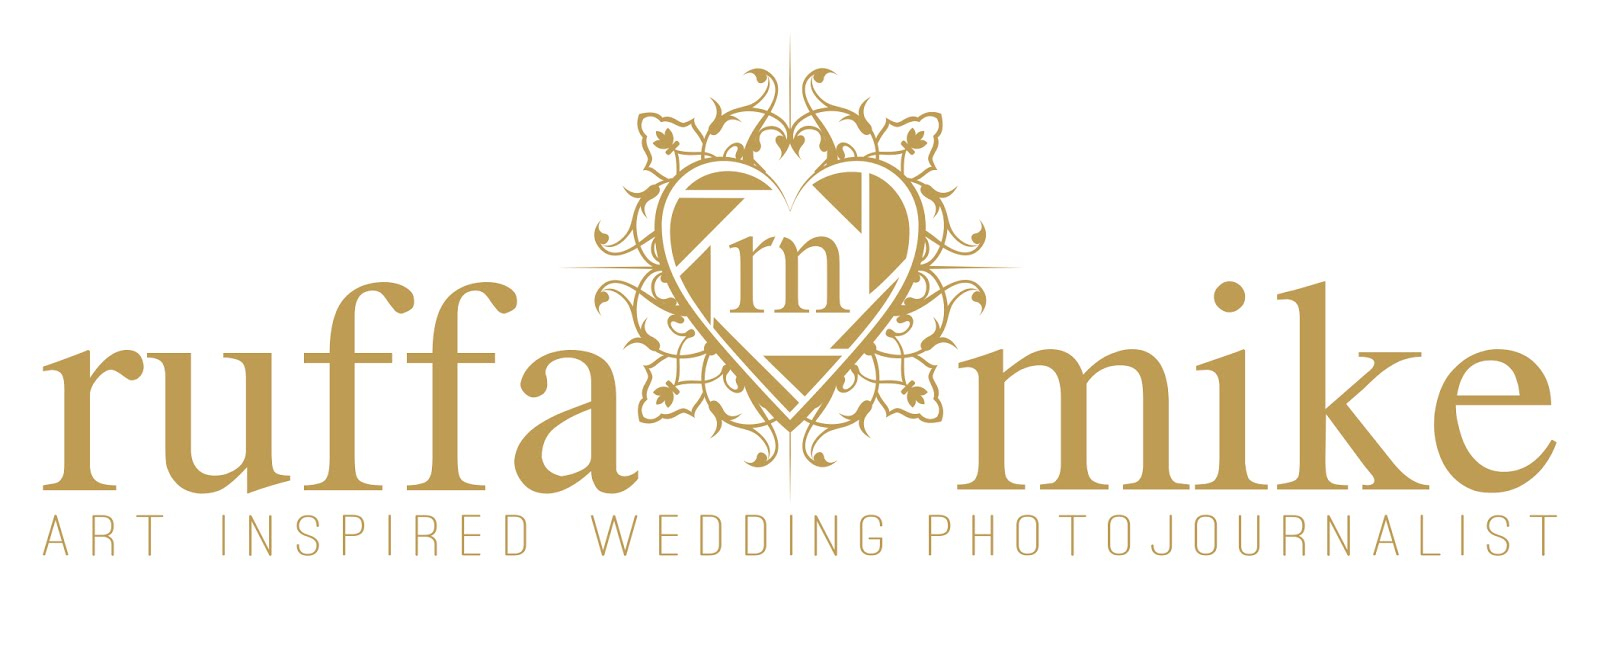 Our No.1 Wedding Supplier!!